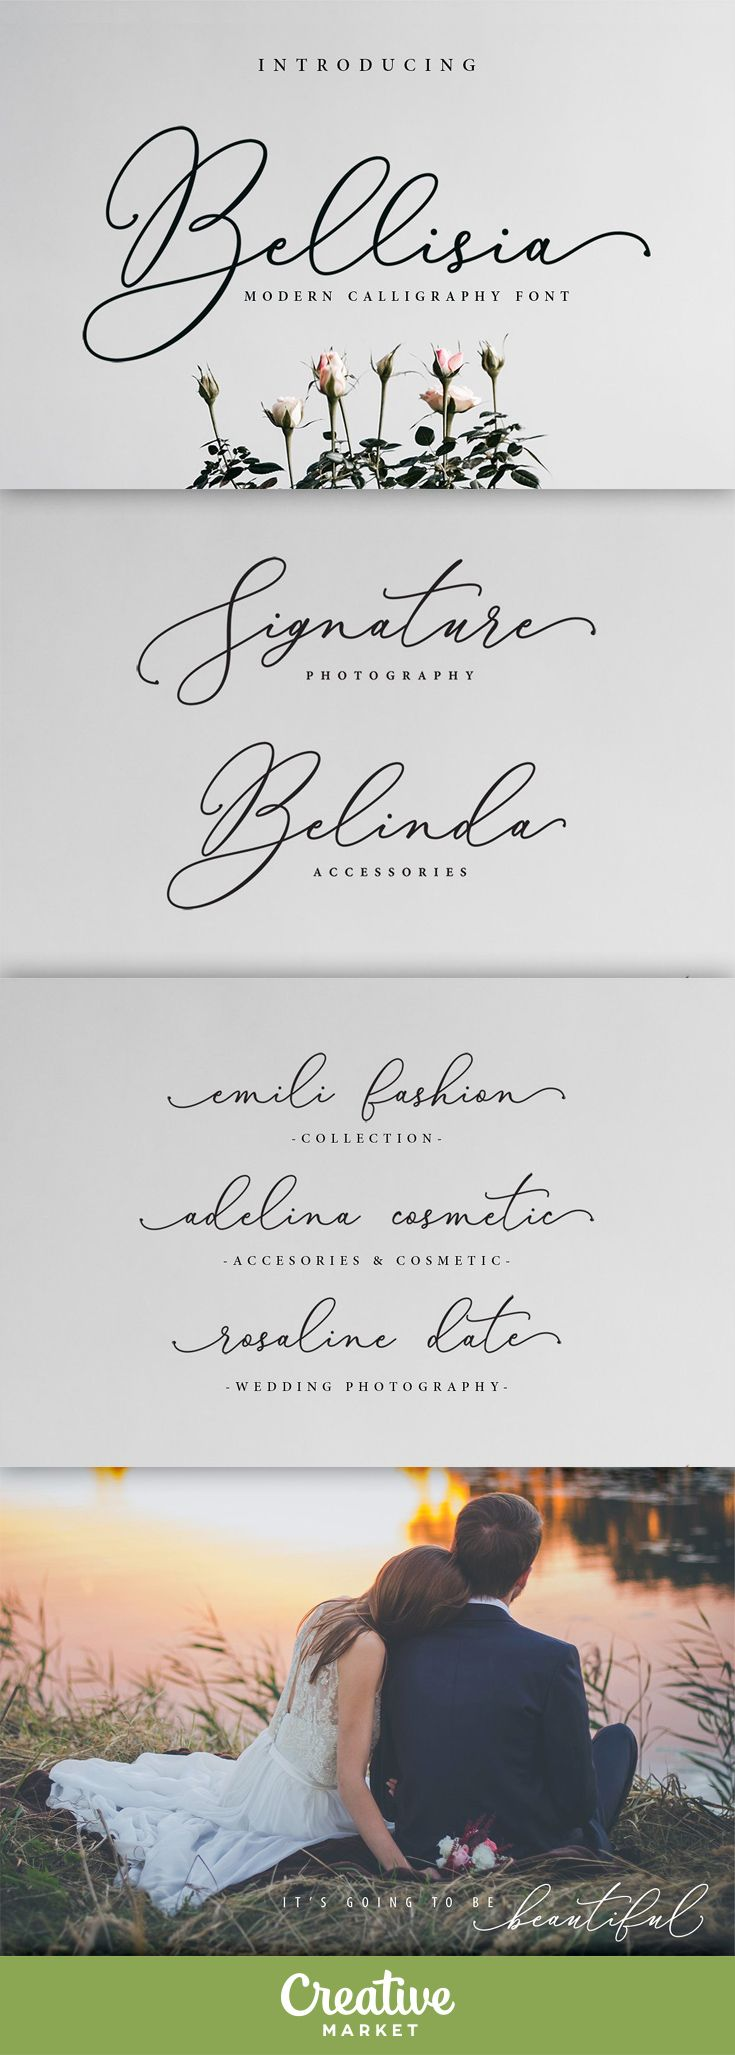 Bellisia Script is a modern calligraphy font. Bellisia a beautiful for logotype, website header, fashion design,wedding card design and any more. Bellisia comes with elegant style, It also comes as a Bellisia font, and a Bellisia Italic font. It contains a full set of lower & uppercase letters, a large range of punctuation, numerals, and multilingual support.